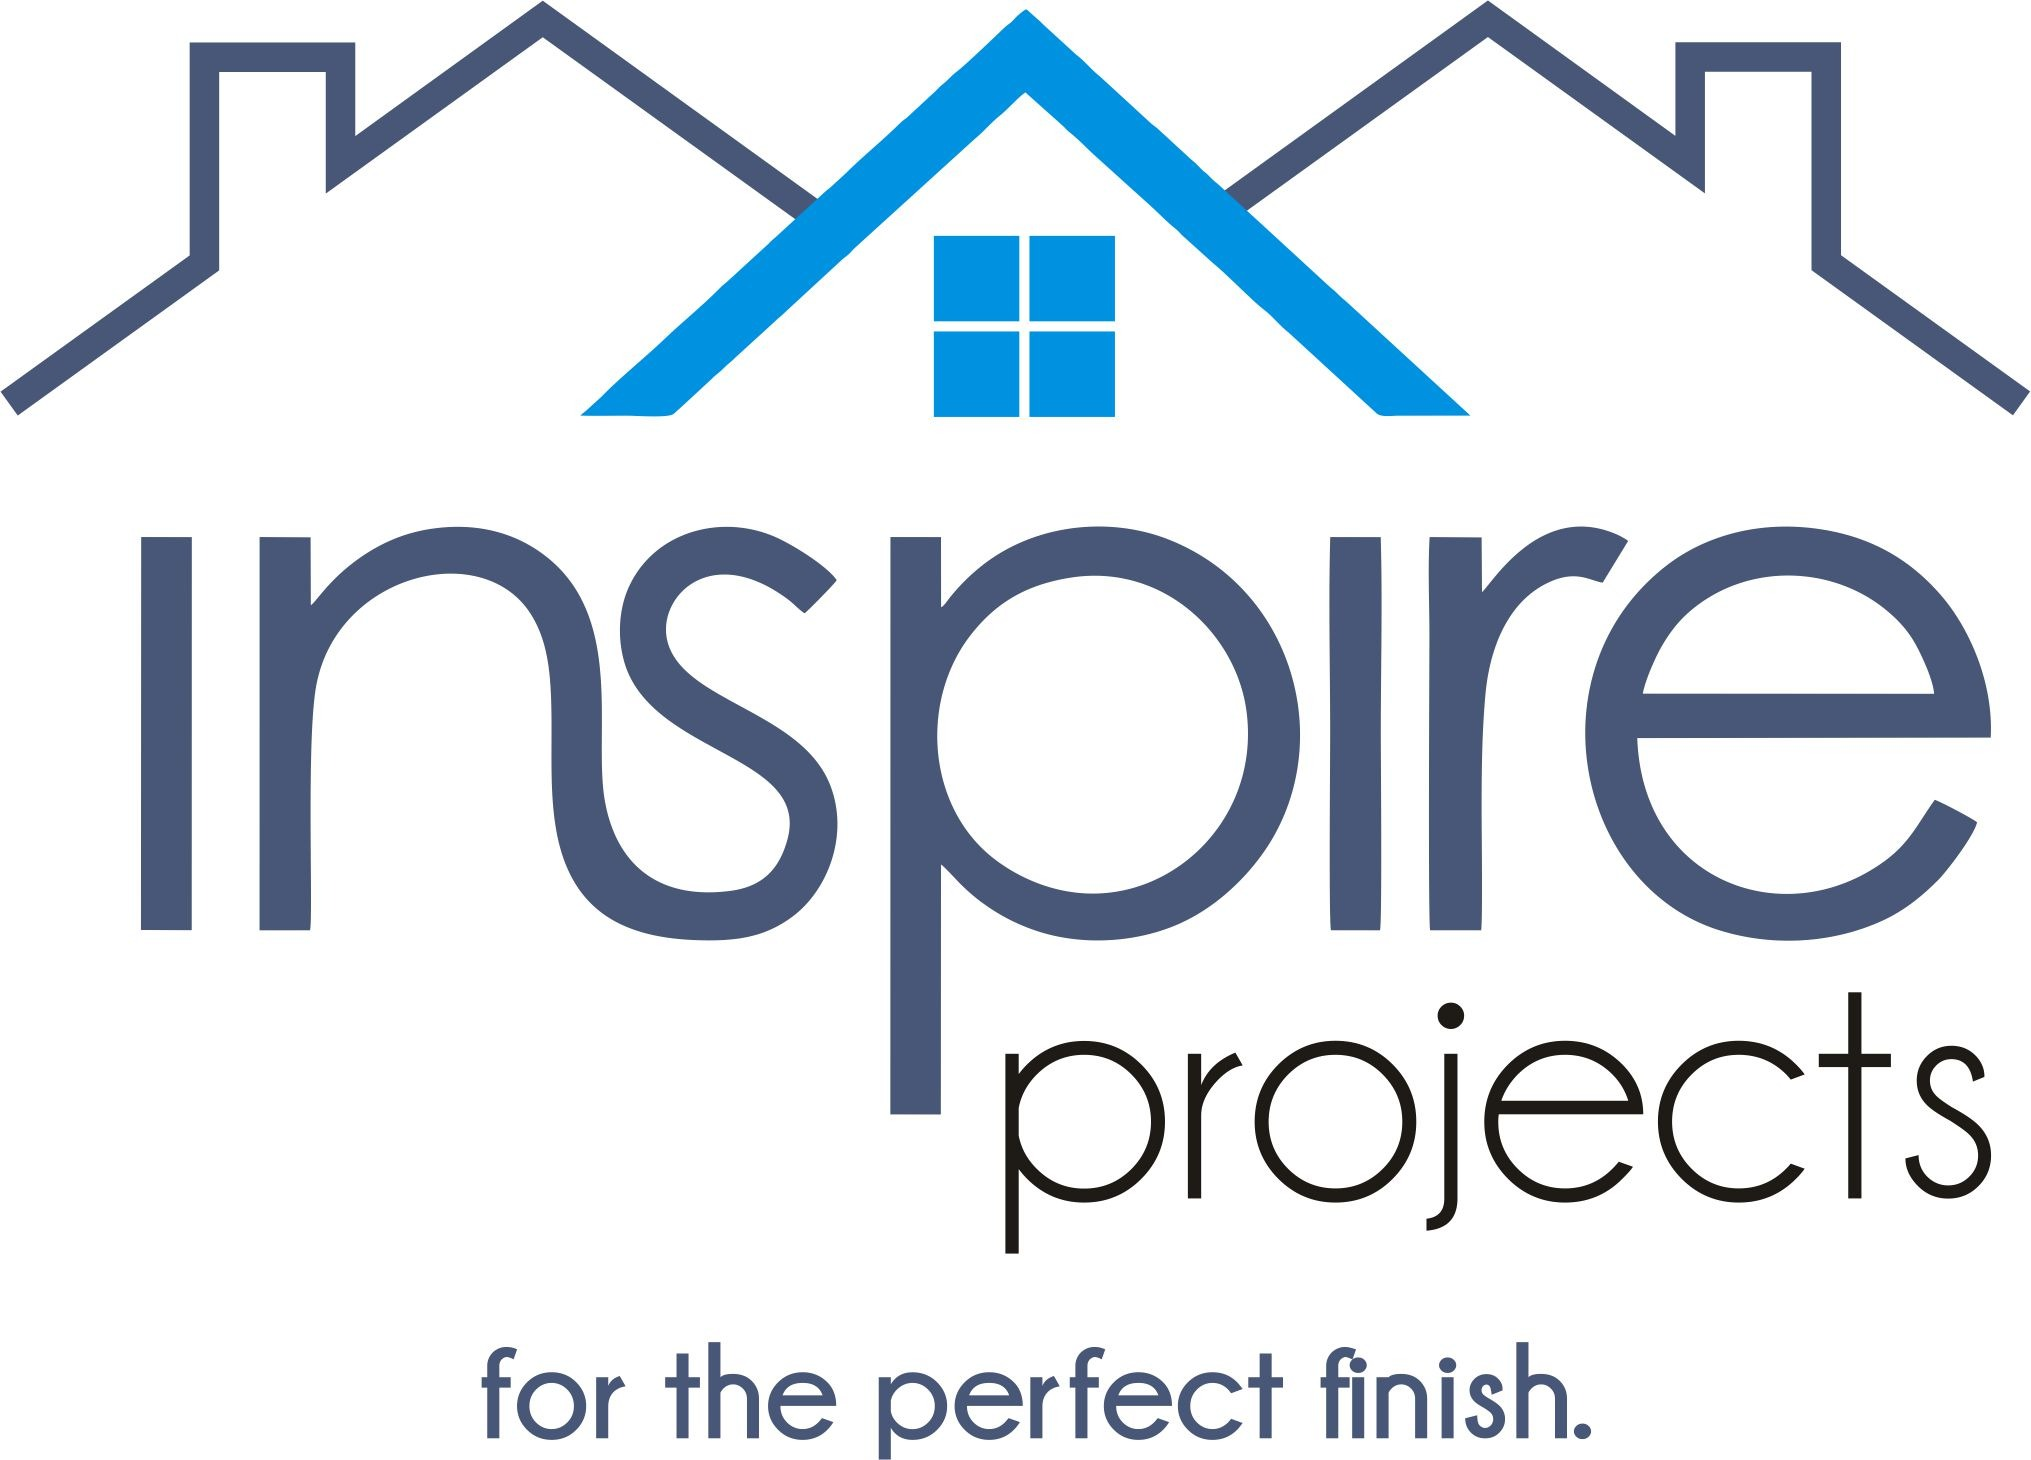 Inspire Projects